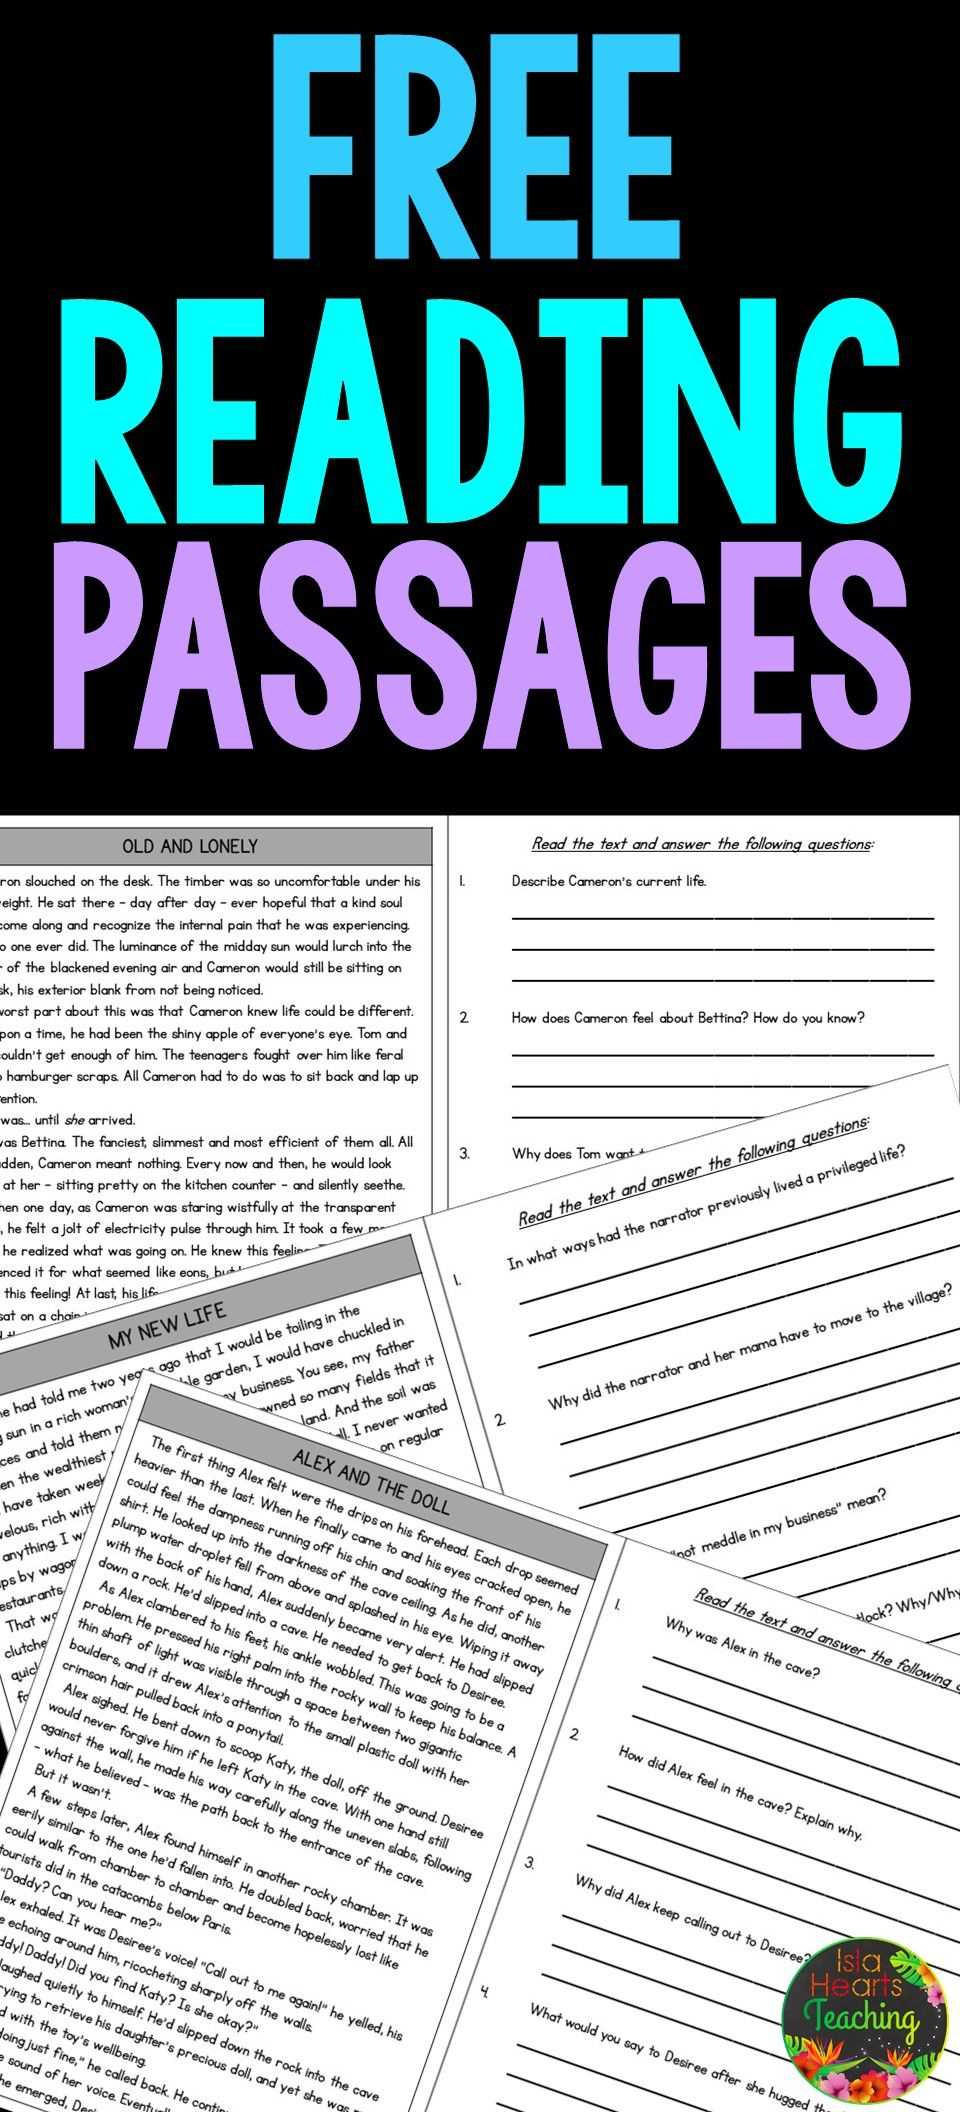 4th Grade Reading Comprehension Worksheets Multiple Choice as Well as Free Reading Prehension Passages and Questions for Students In